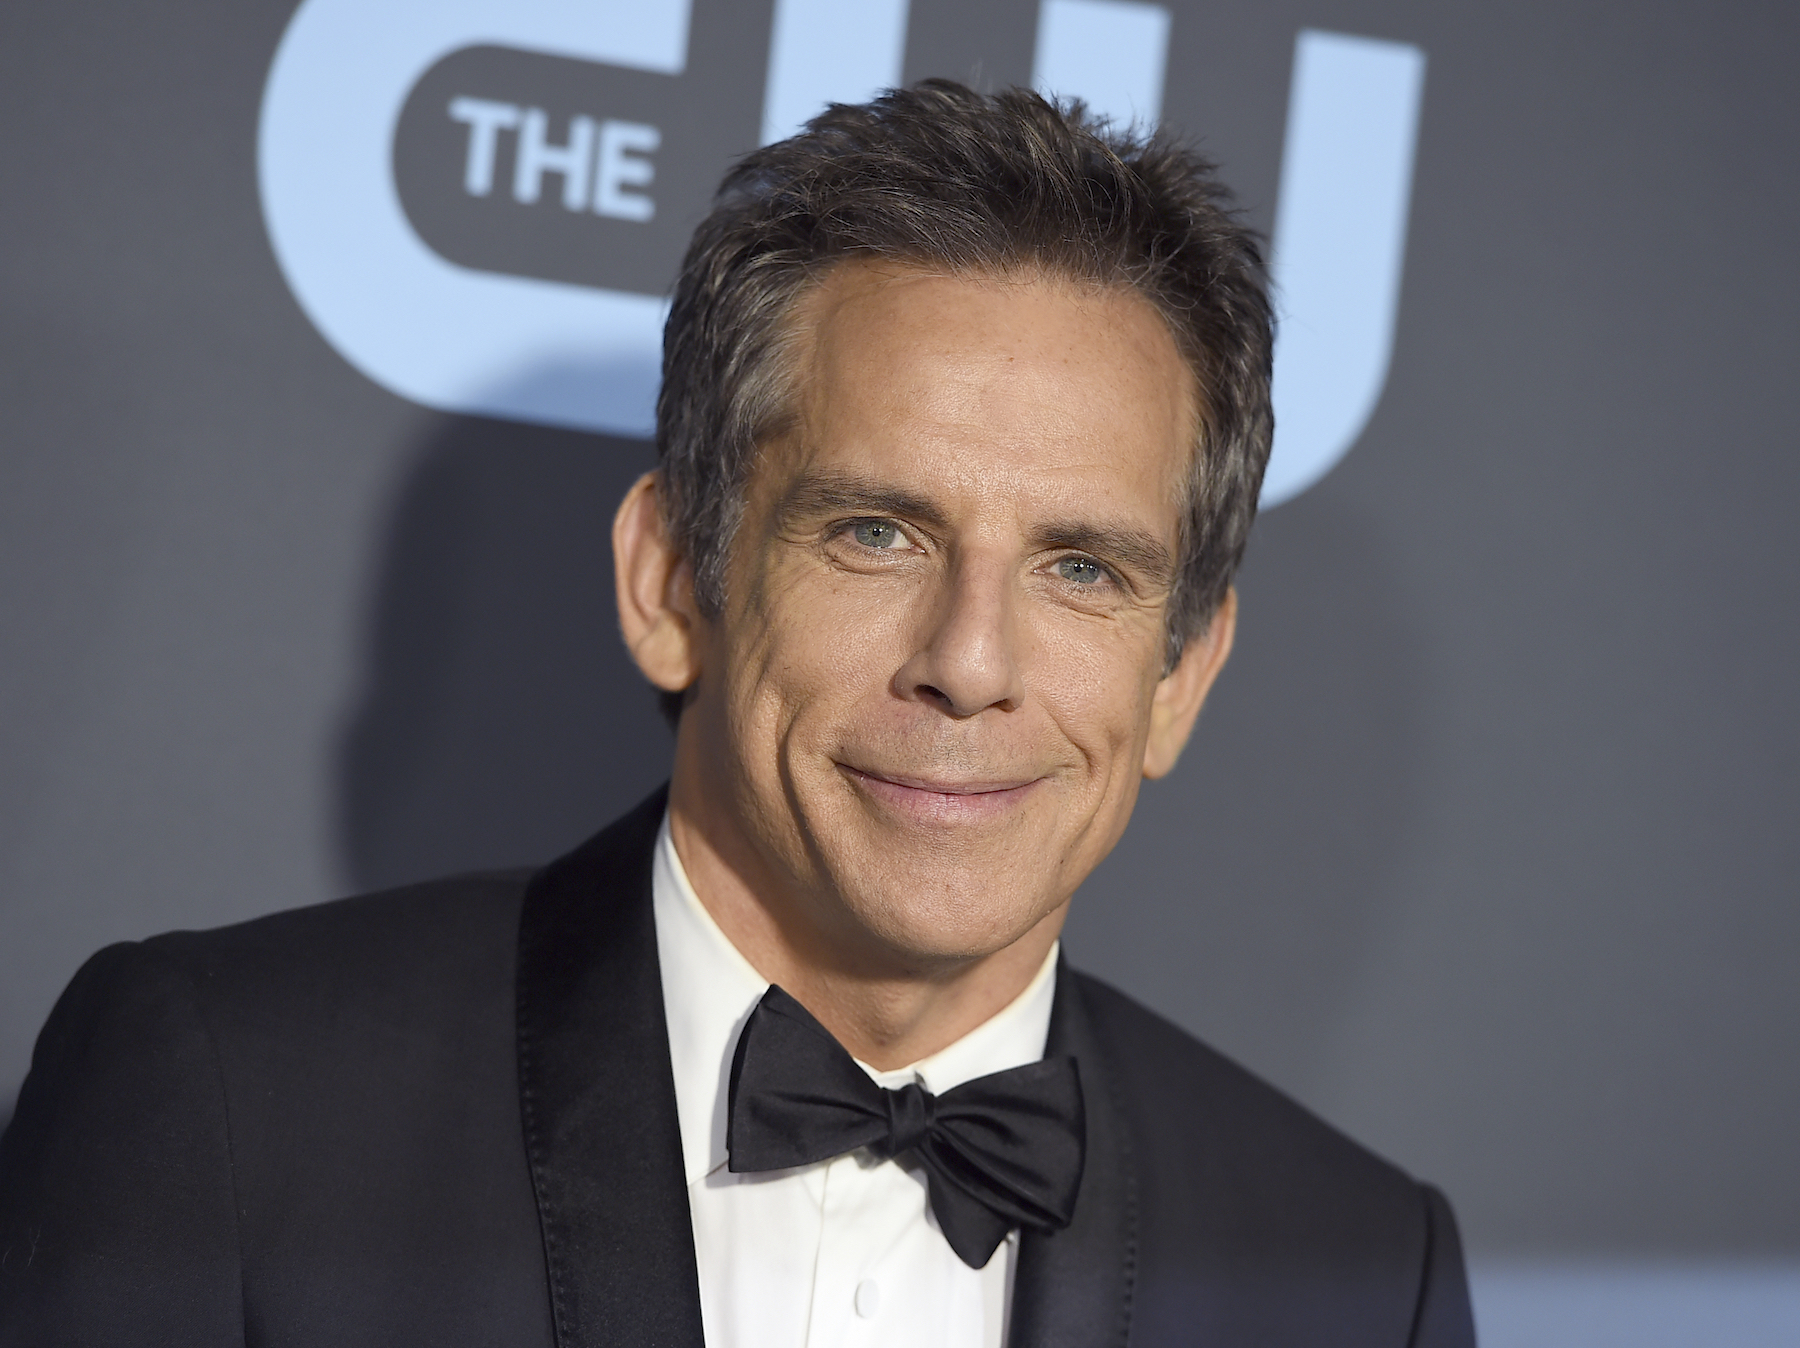 "<div class=""meta image-caption""><div class=""origin-logo origin-image ap""><span>AP</span></div><span class=""caption-text"">Ben Stiller arrives at the 24th annual Critics' Choice Awards on Sunday, Jan. 13, 2019, at the Barker Hangar in Santa Monica, Calif. (Jordan Strauss/Invision/AP)</span></div>"